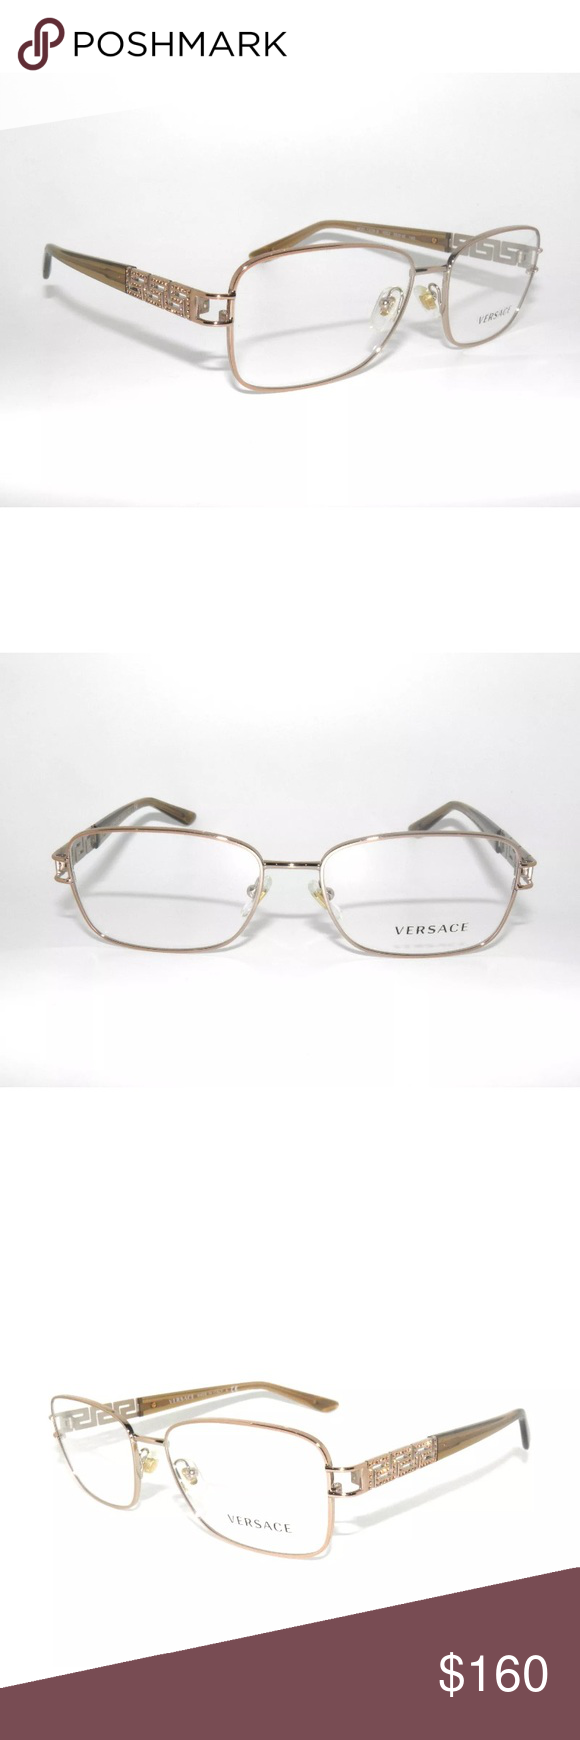 b048c14b896 Versace Eyeglasses 1229 Rose Gold Frame No prescription yet Authentic New  Comes with Versace case. Versace Accessories Glasses